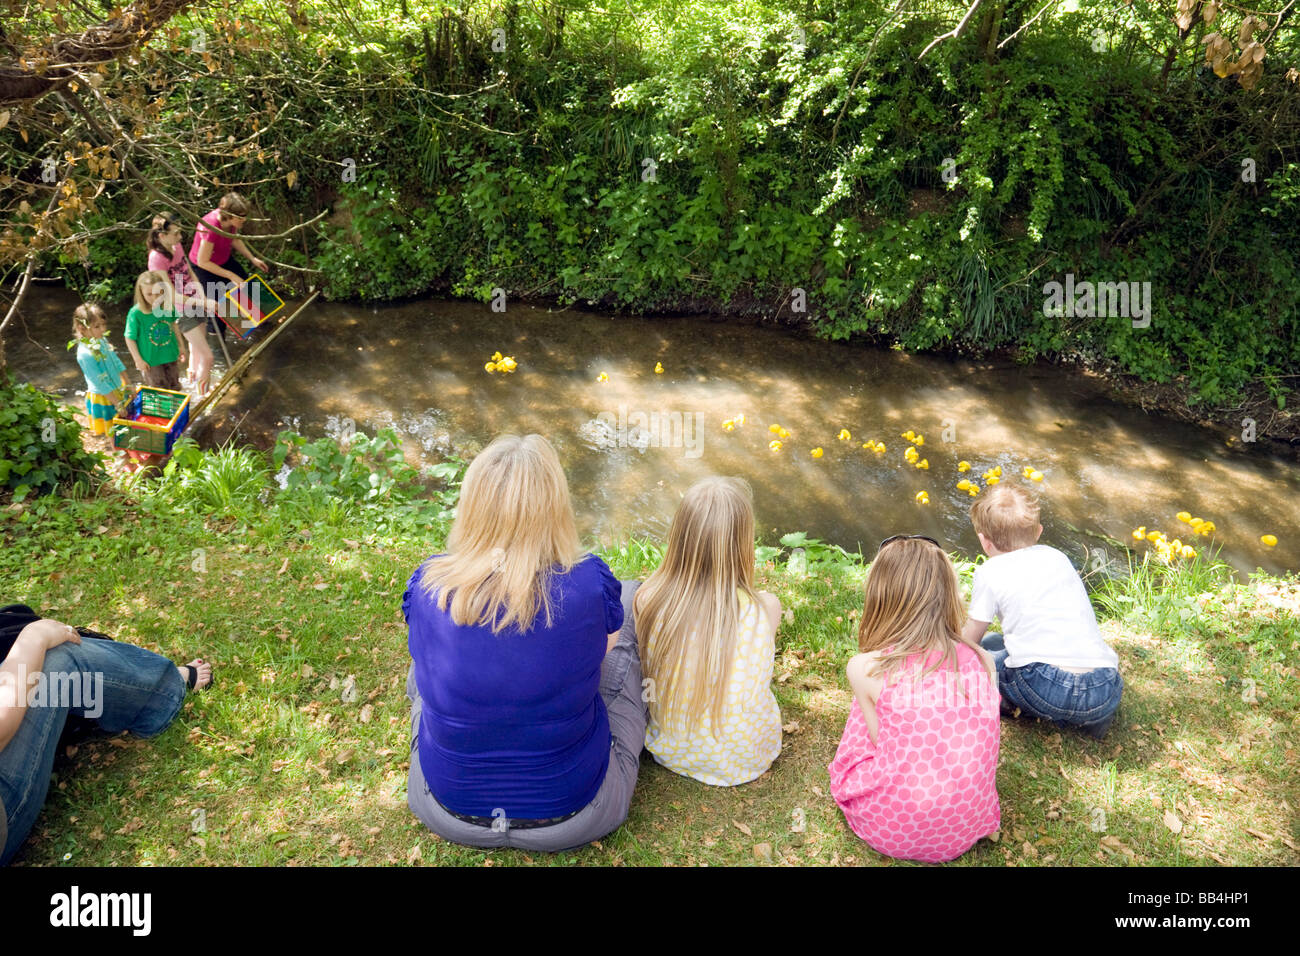 People watching a Charity plastic duck race at Wallingford, Oxfordshire, UK - Stock Image